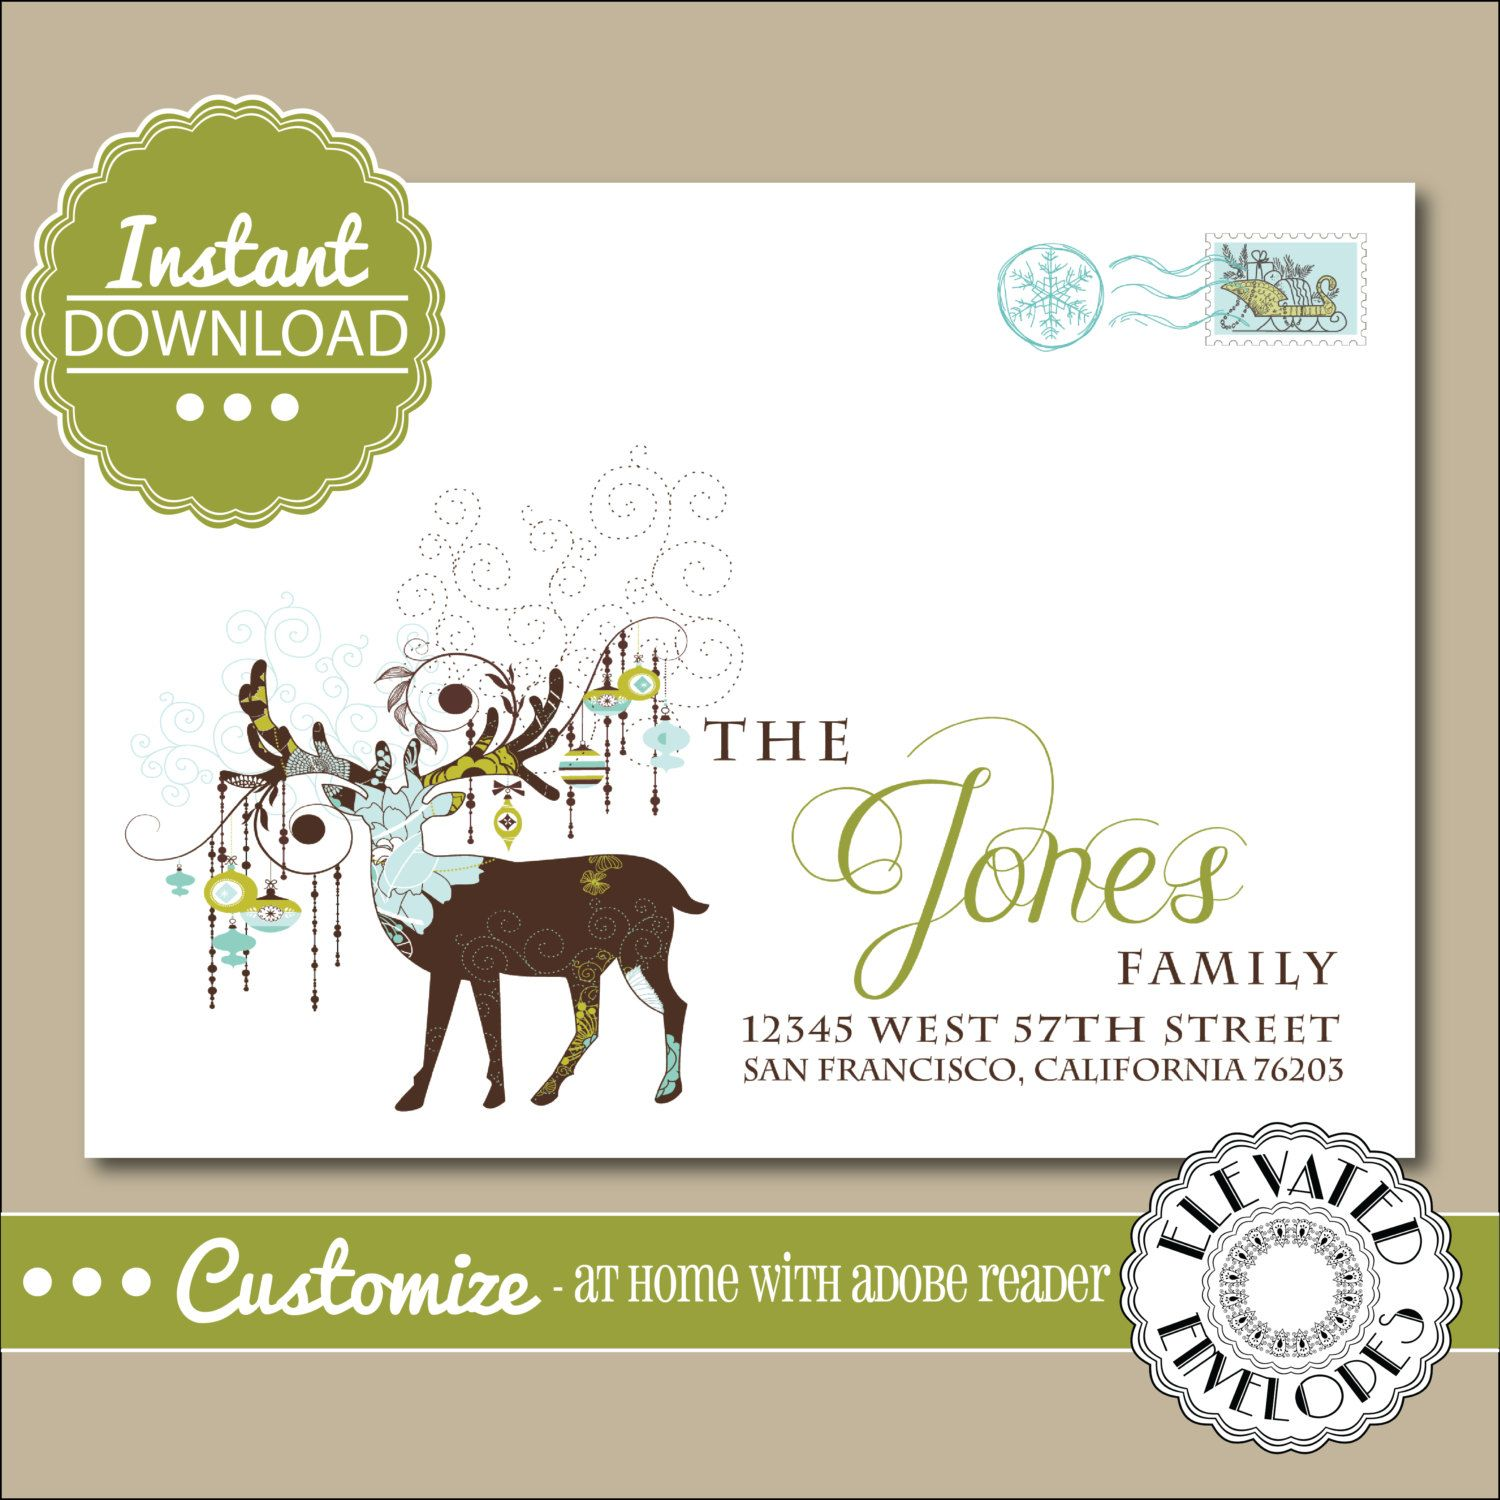 EDITABLE Christmas ENVELOPE Template,Christmas Envelope ADDRESSING,Christmas,Deer,Recipient Addressing,Envelope Addressing,Instant Download by ElevatedEnvelopes on Etsy